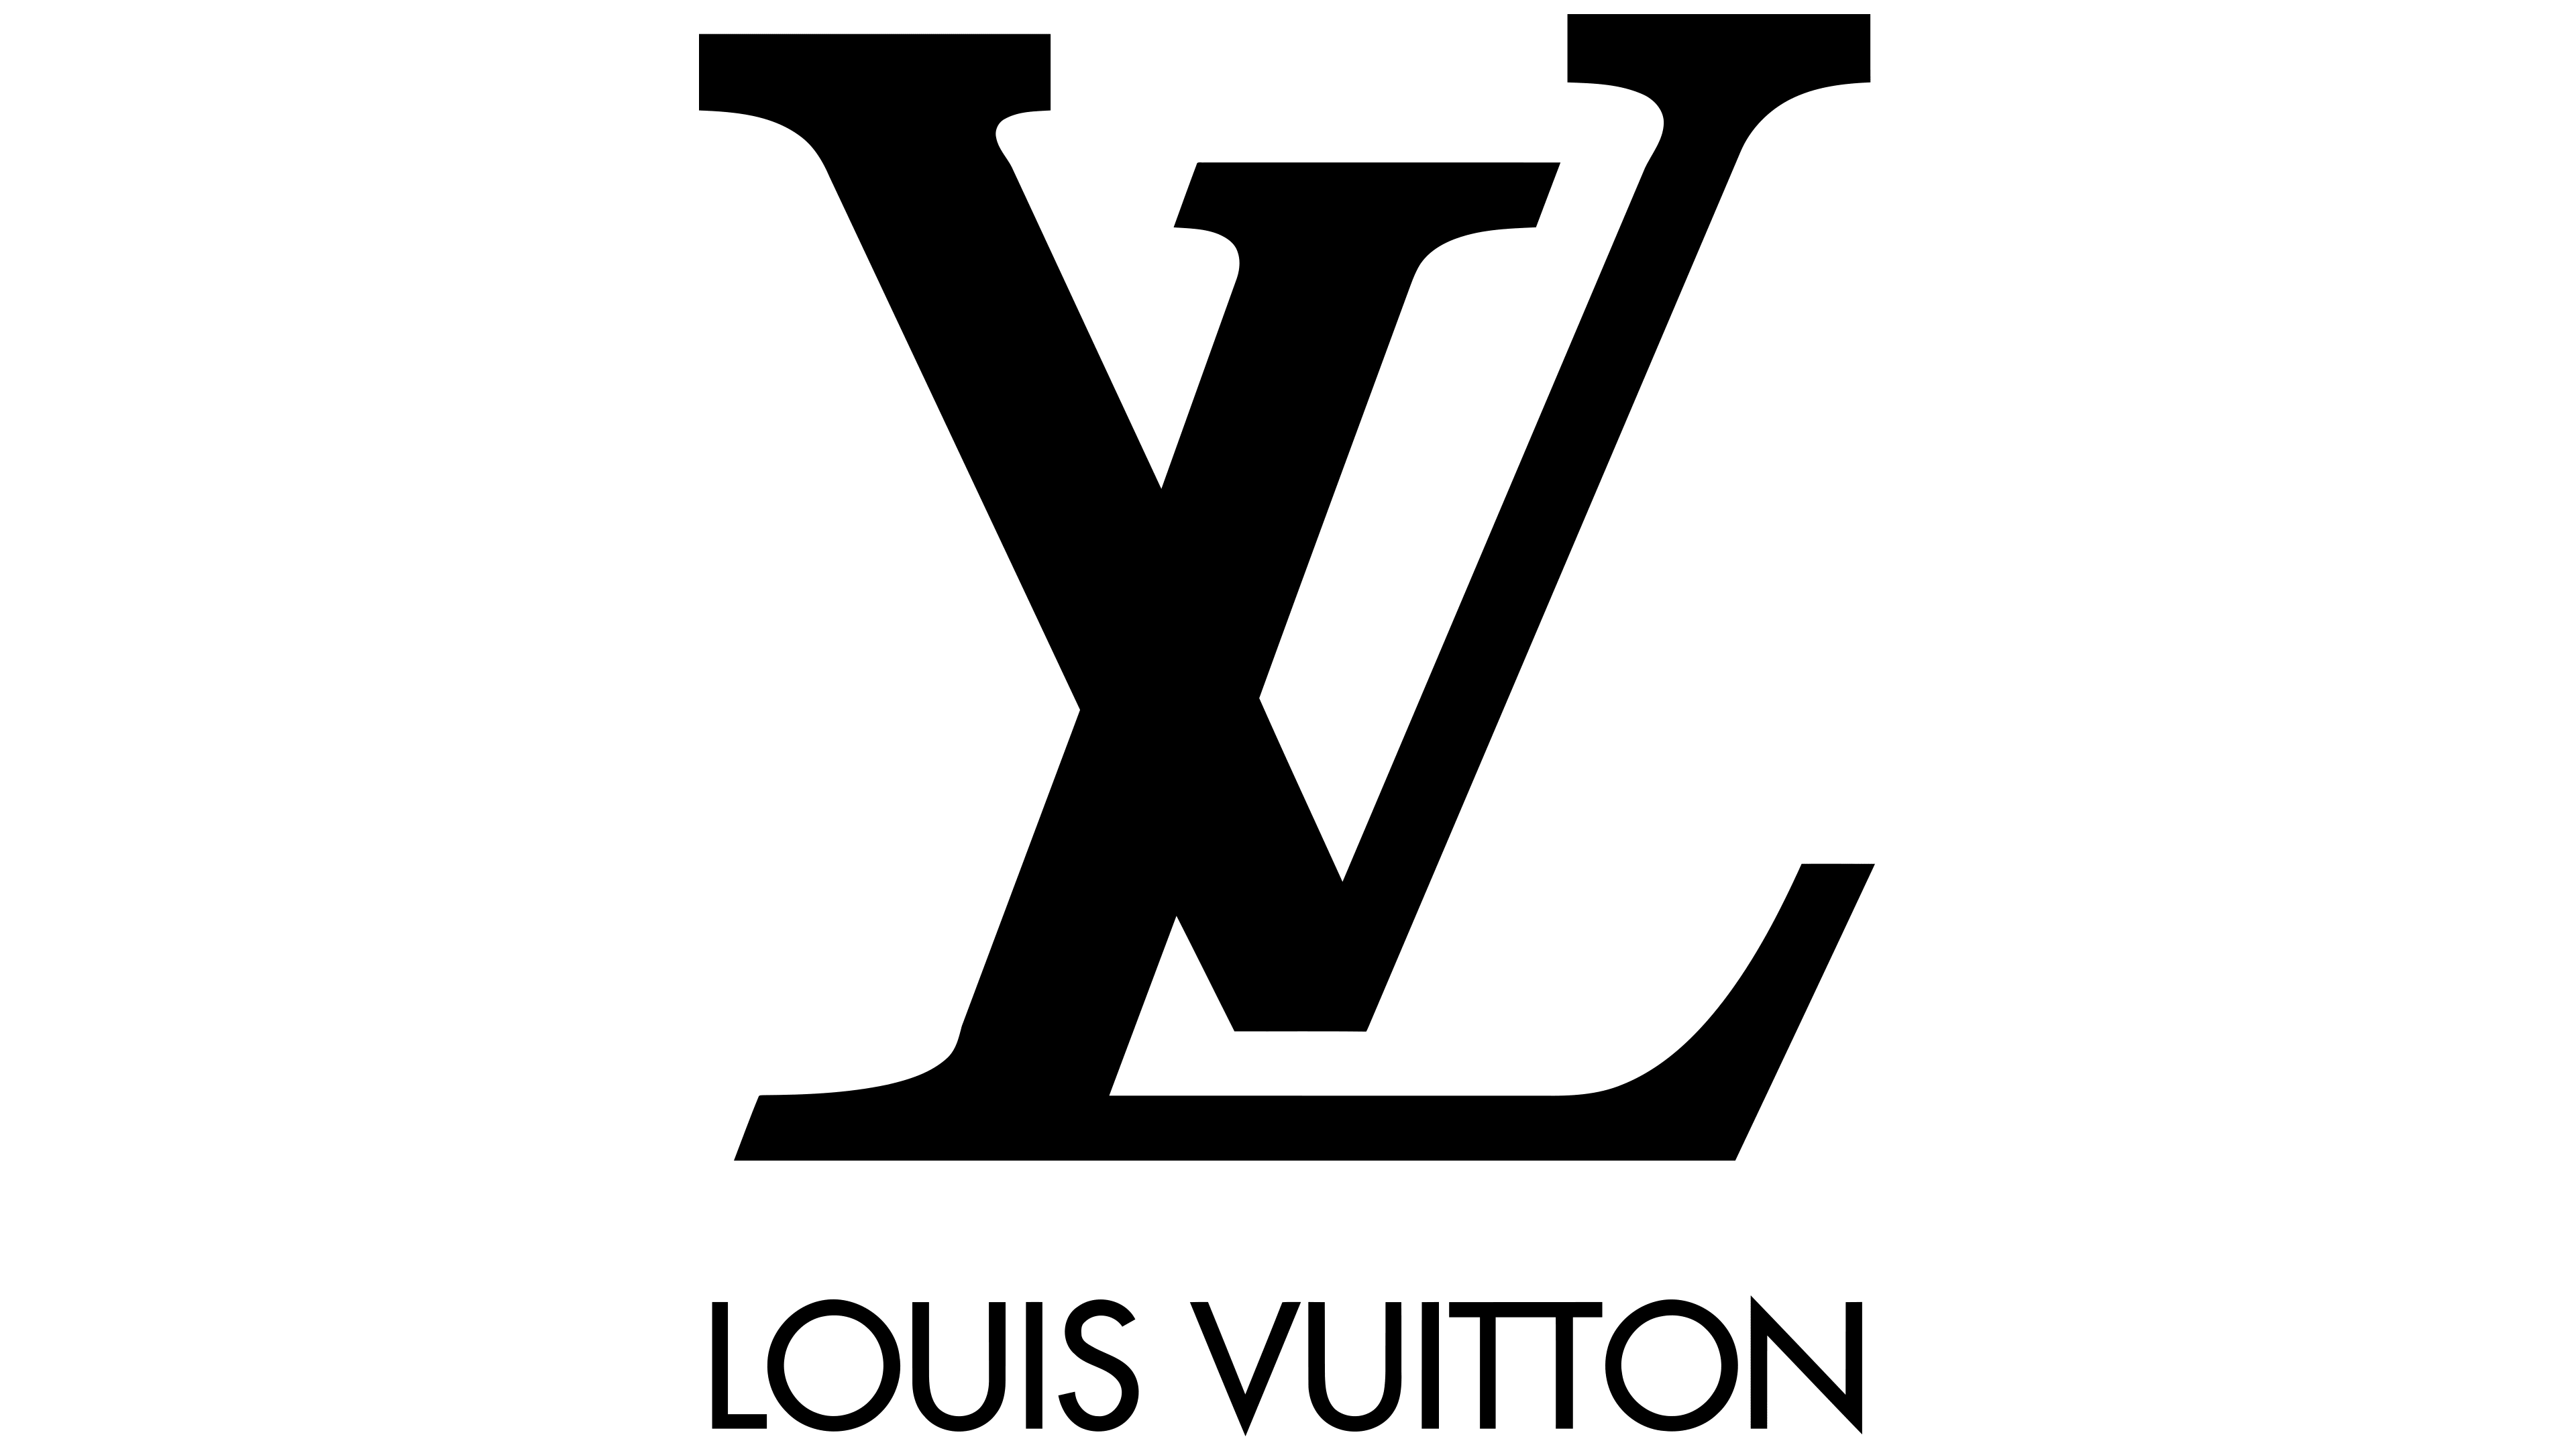 louis vuitton logo logos de marcas. Black Bedroom Furniture Sets. Home Design Ideas